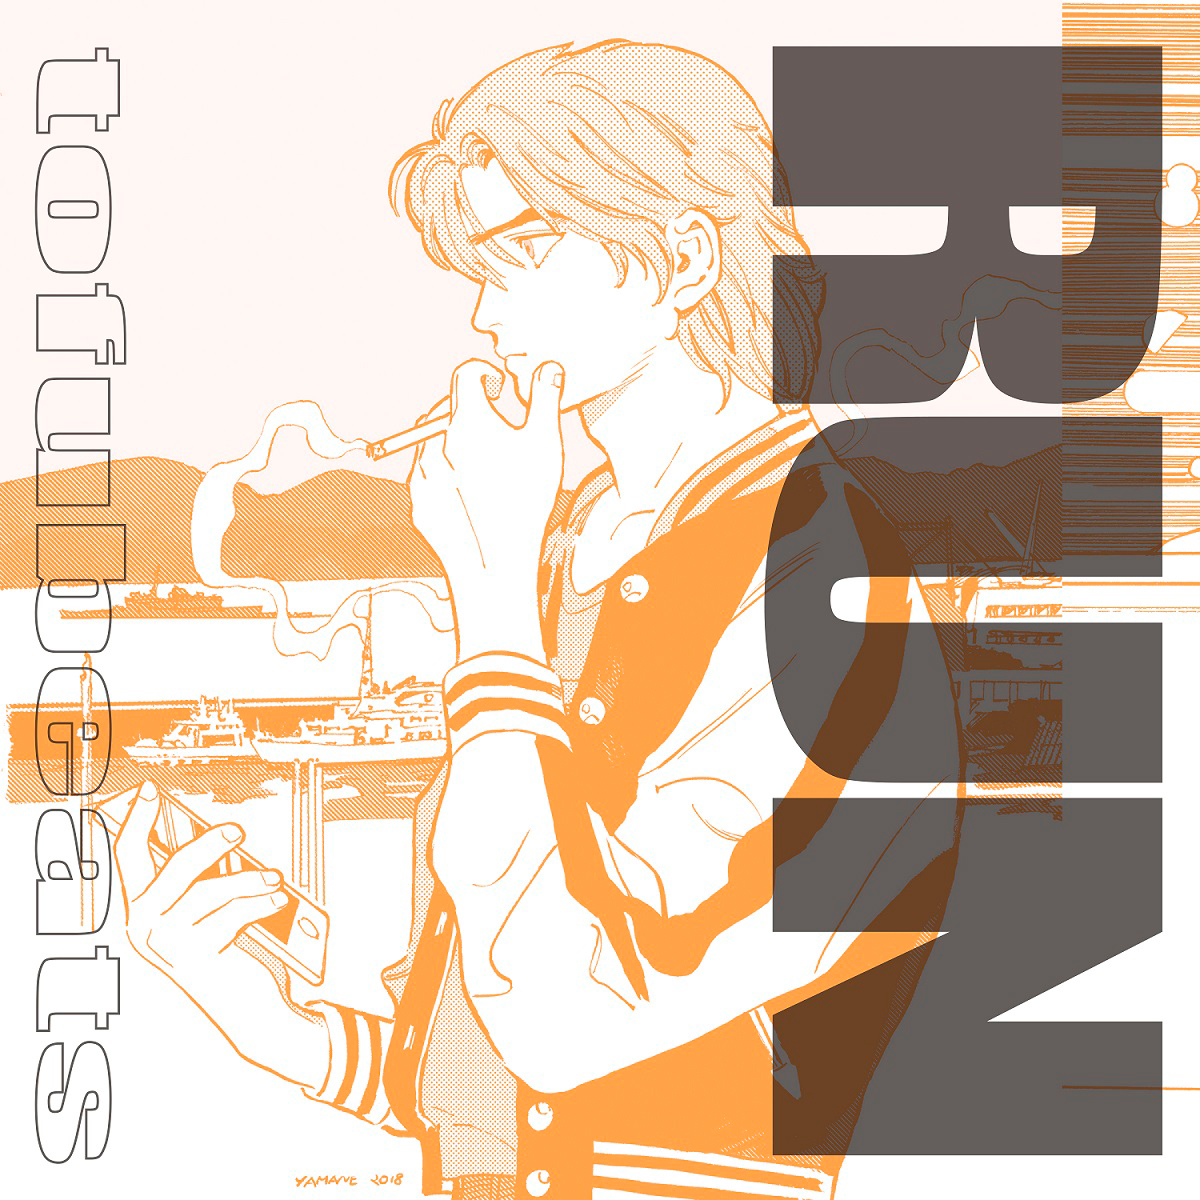 tofubeats 4th album 「RUN」